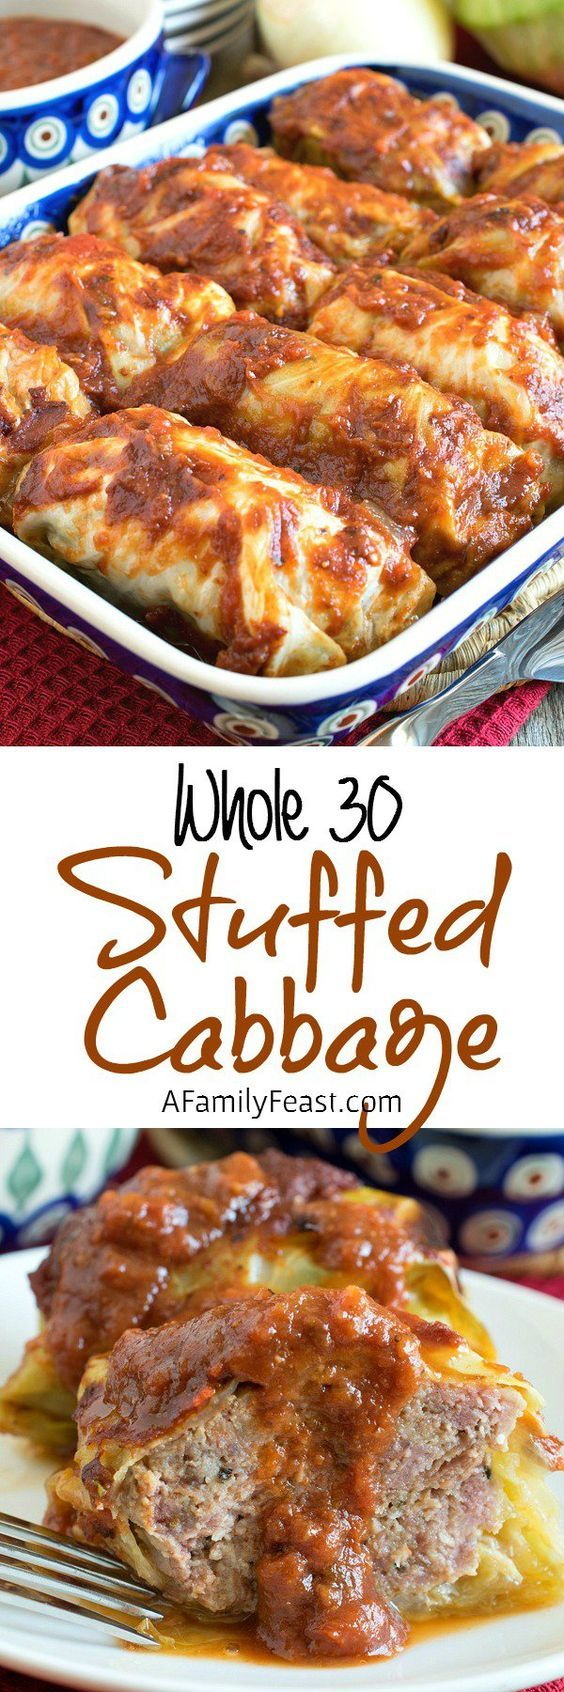 Whole30 Stuffed Cabbage - A delicious stuffed cabbage recipe anyone would love whether you are on the Whole30 program or not! Fantastic flavors!